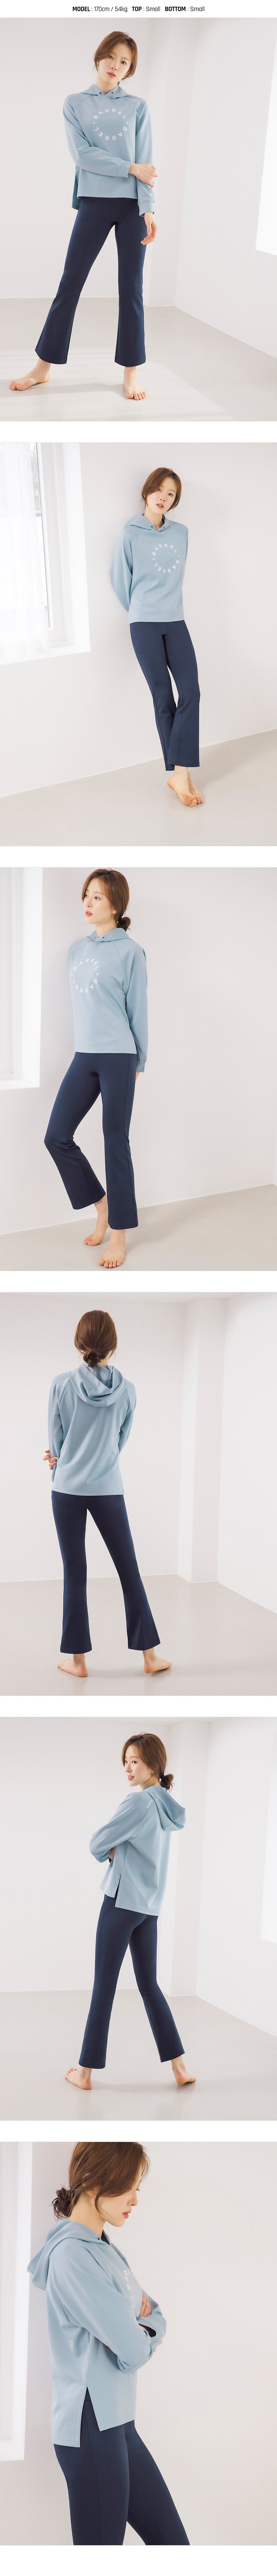 Barrel Fit Womens Slit Hoodies-SKYBLUE_image